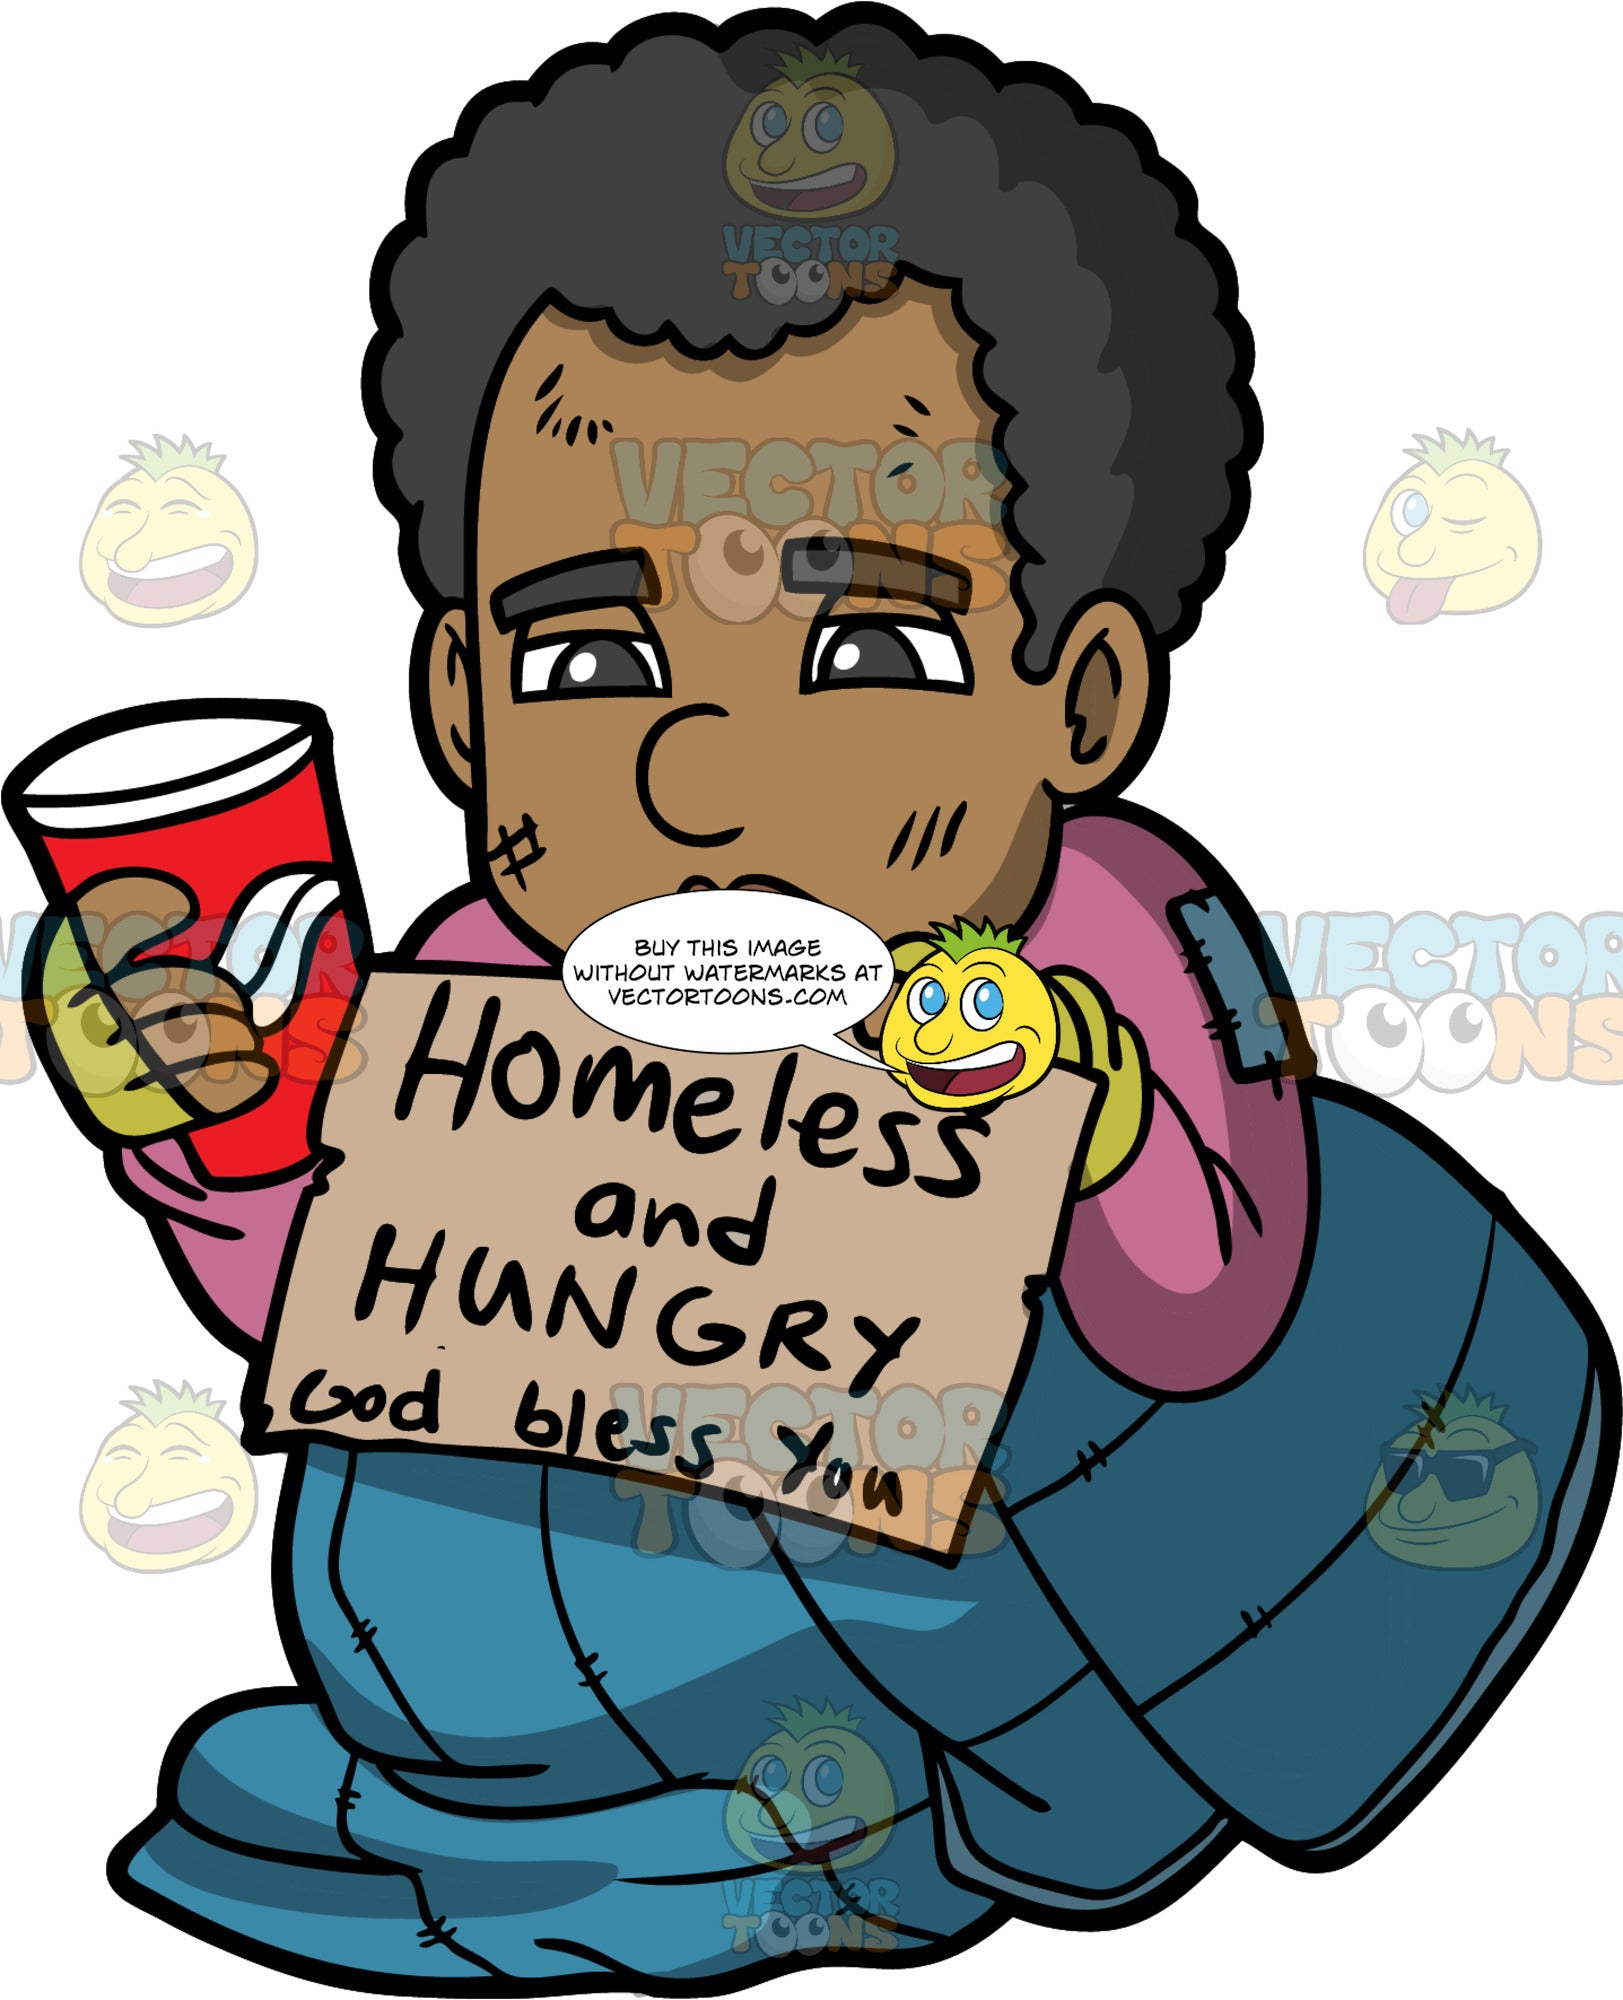 Jimmy Holding A Sign That Says Homeless And Hungry. A homeless man wearing a purple shirt, sitting on the sidewalk inside a blue sleeping bag, holding a homeless and hungry sign in one hand, and a paper cup in the other